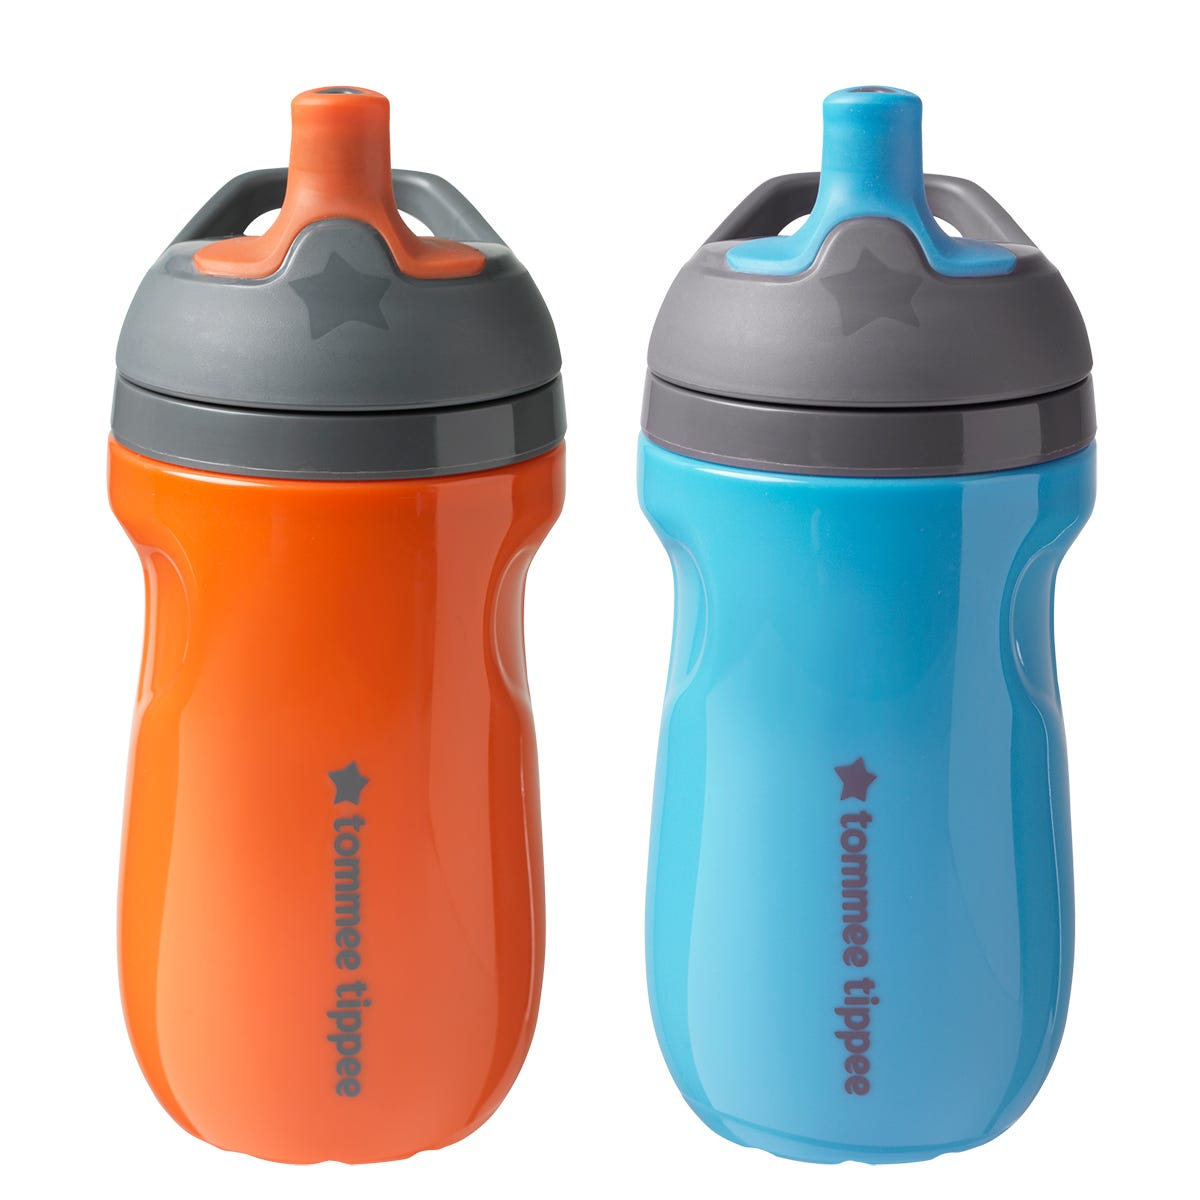 Insulated Sippee Bottle 2 pack